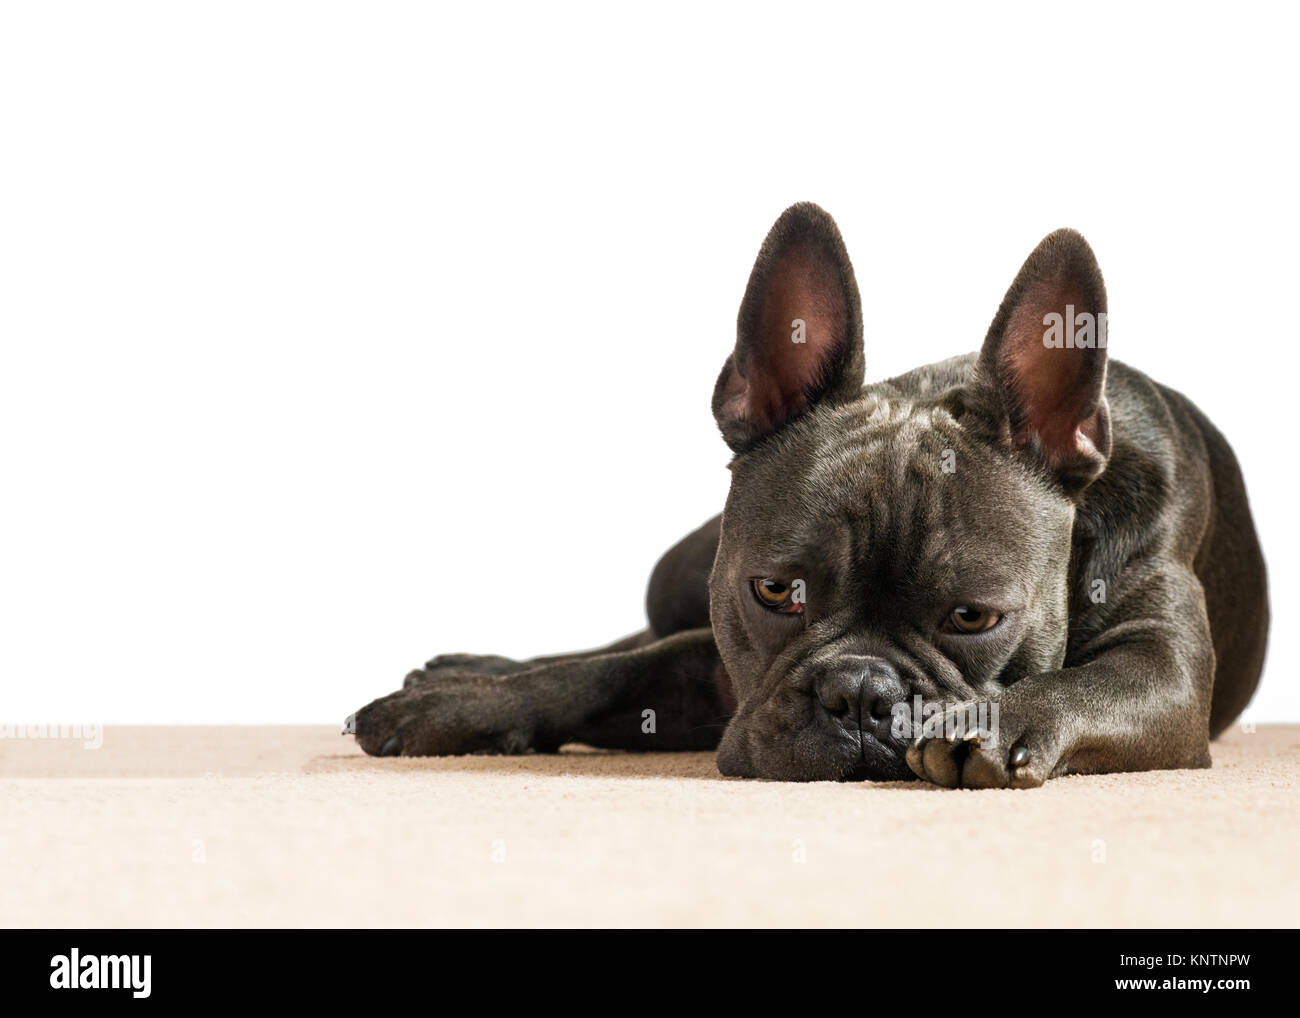 blue french bulldog depressed with sad eyes looking down in the dumps on a white background with a cream house carpet - Stock Image